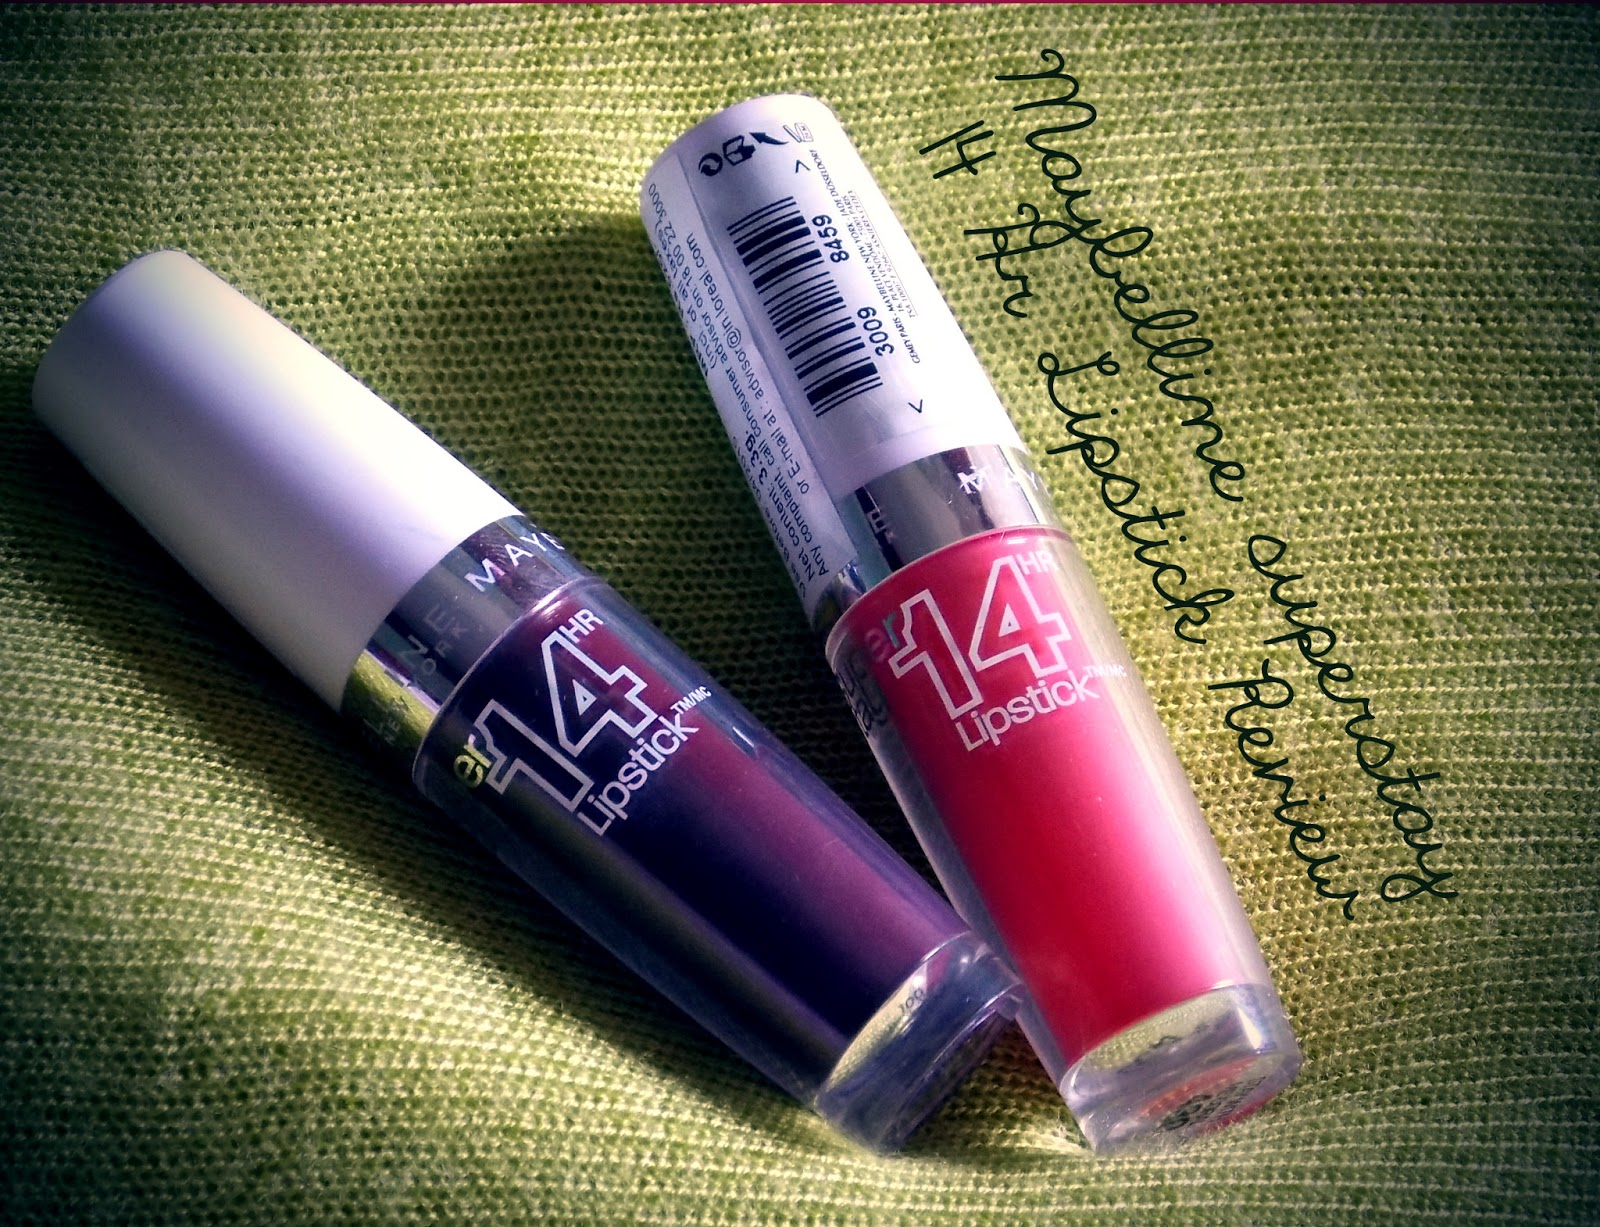 The Beauty and the Cheap: Maybelline Super Stay 14 Hr Lipstick Review!